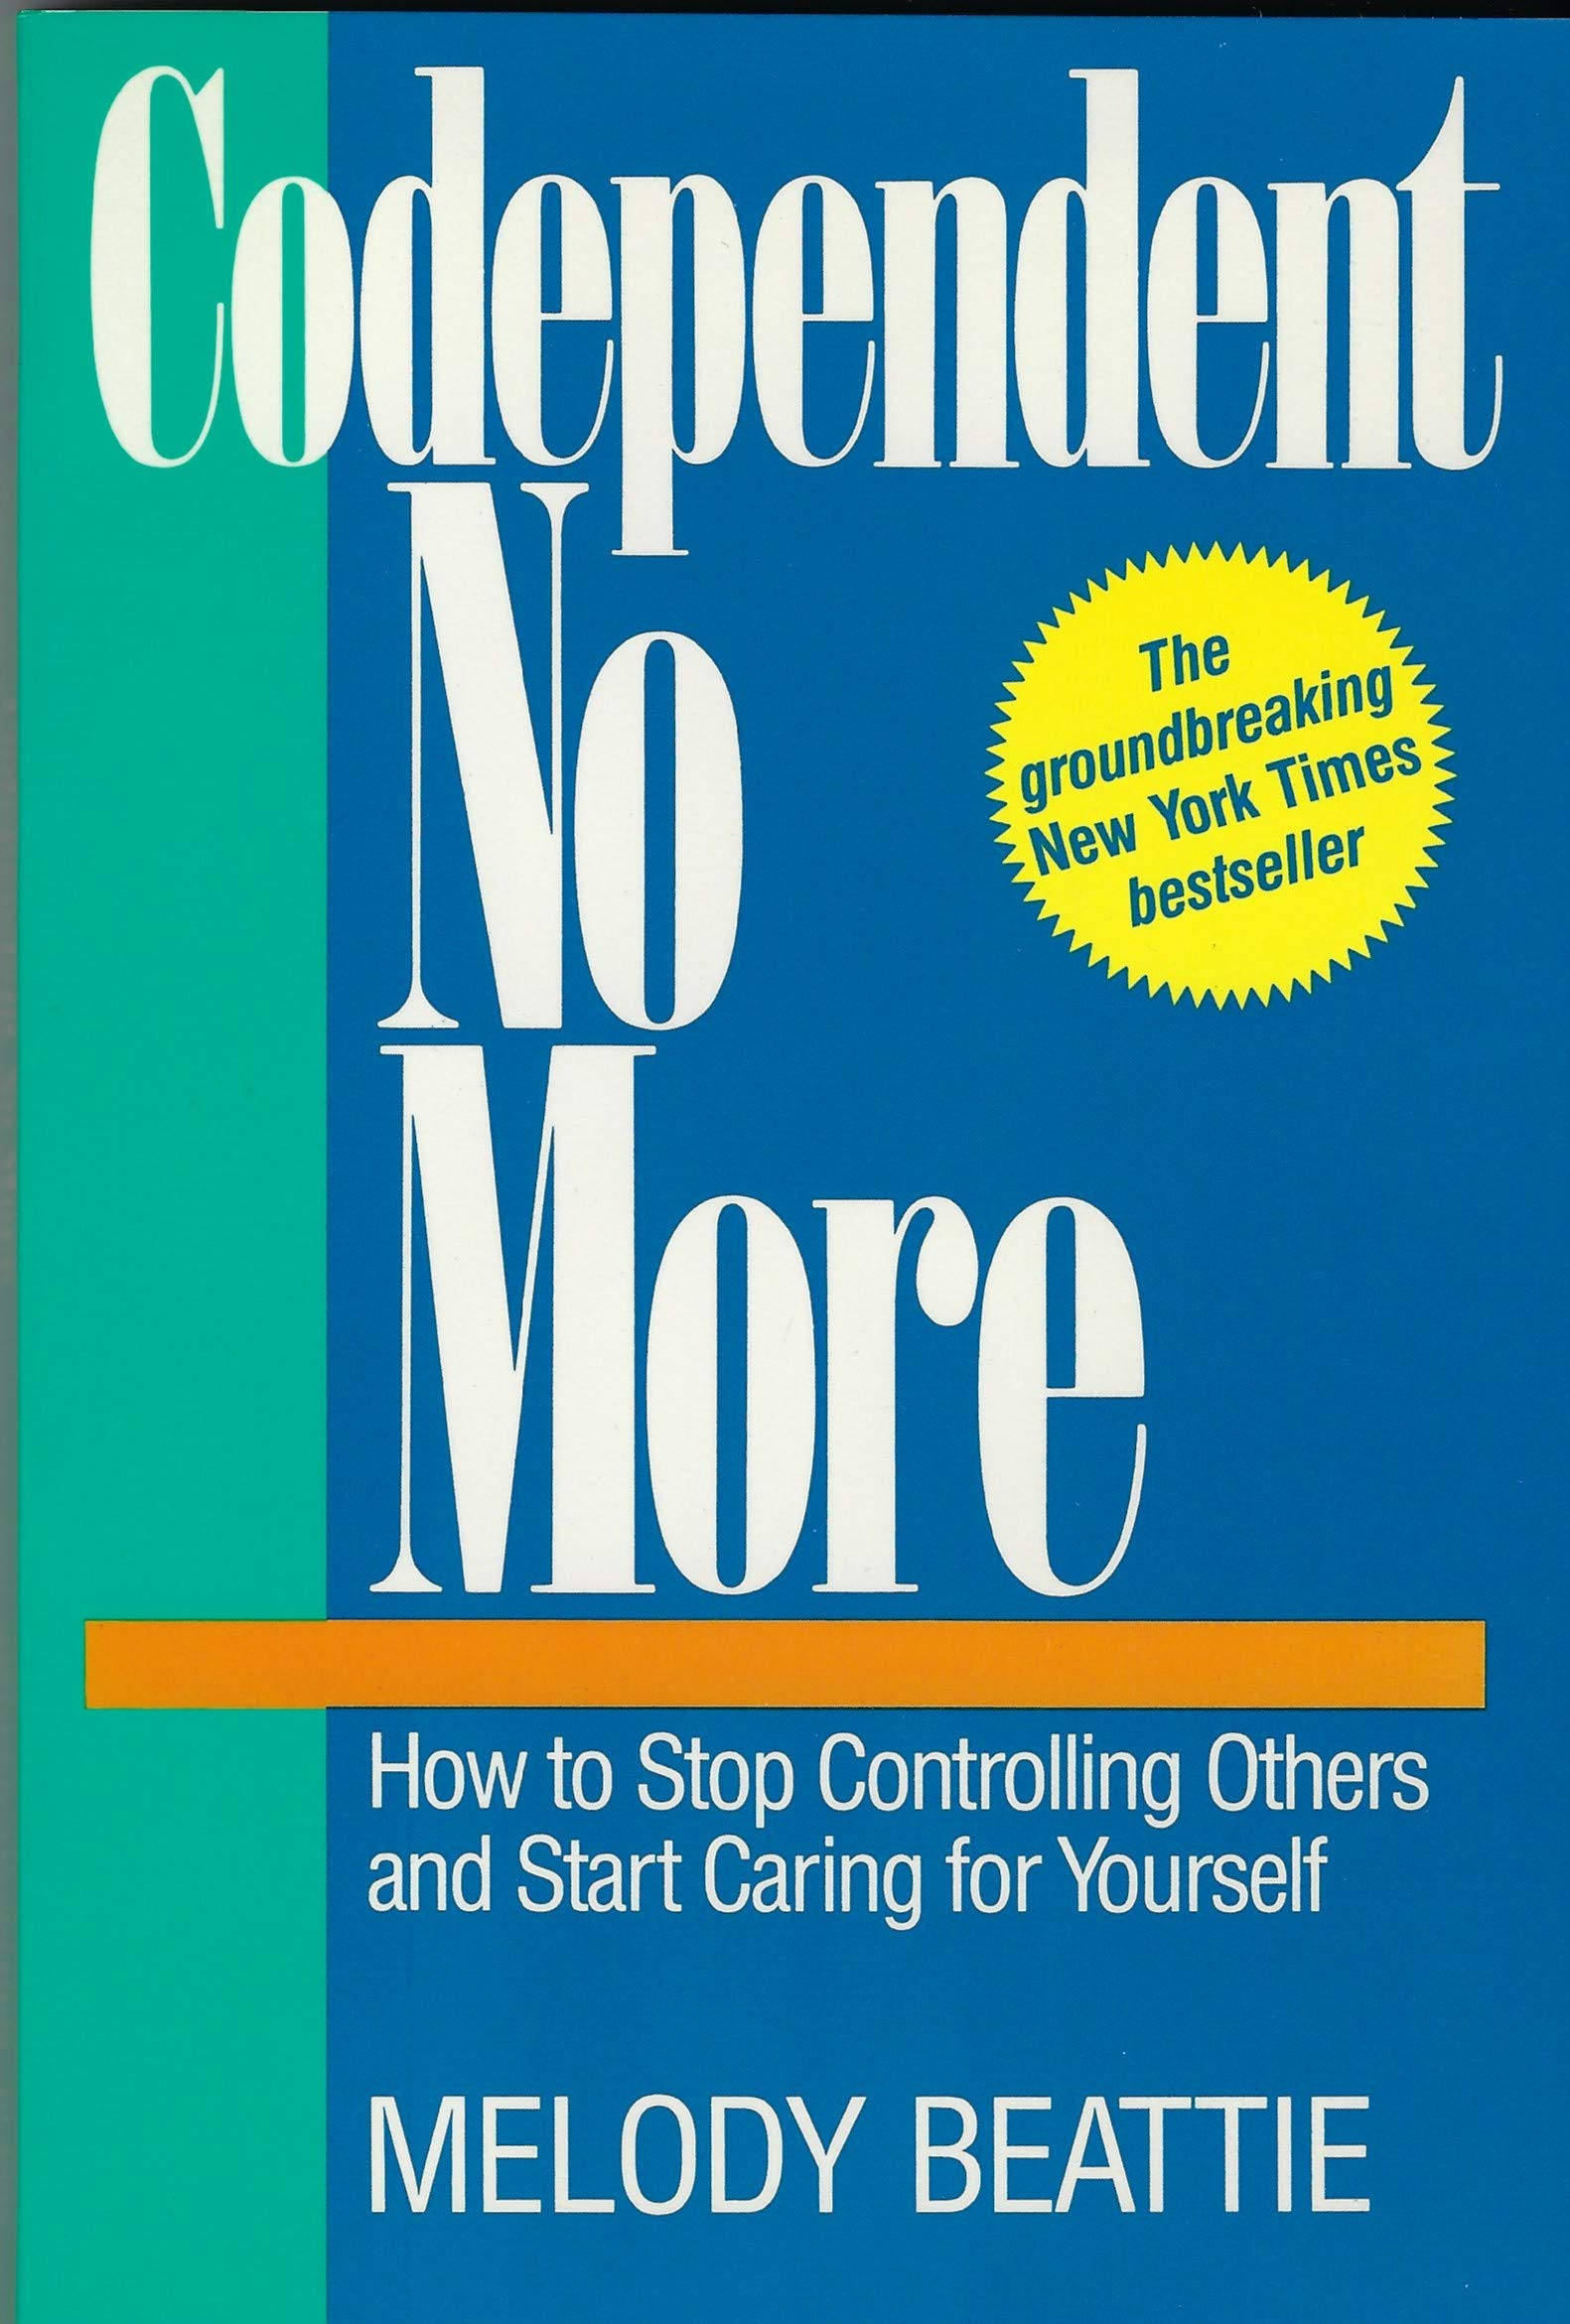 Codependent No More: How to Stop Controlling Others and Start Caring for Yourself: Beattie, Melody: 9780062554468: Amazon.com: Books